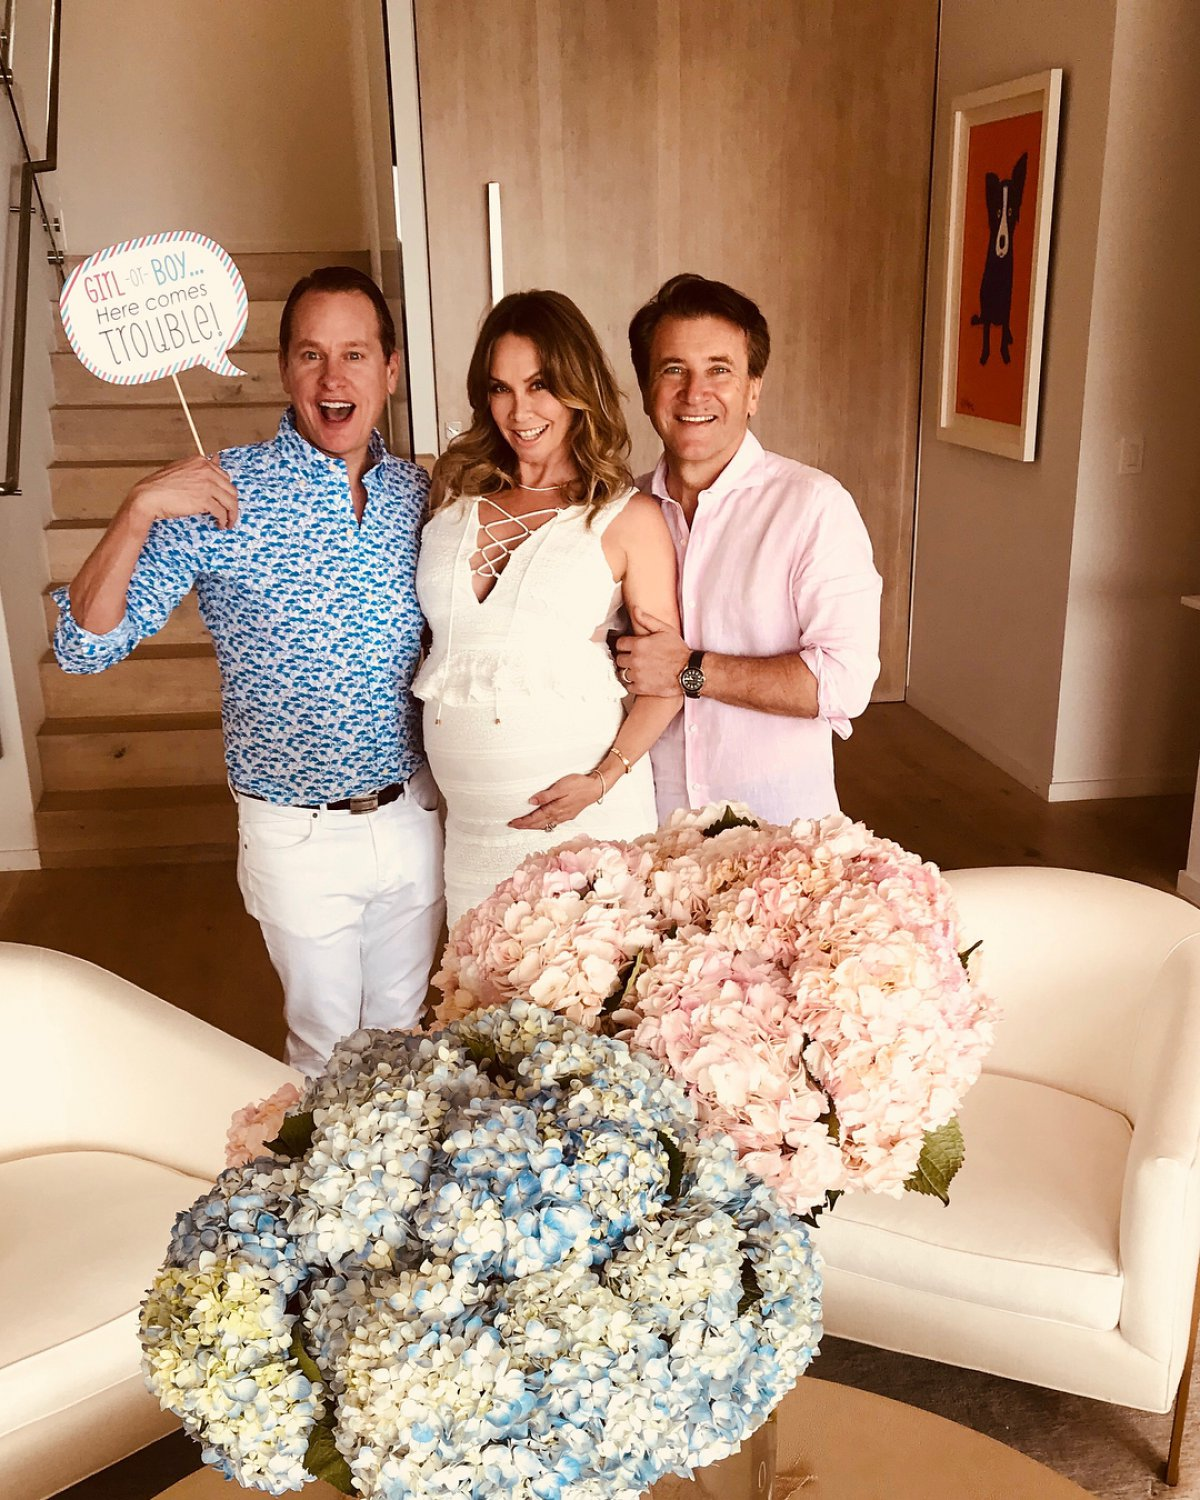 Story Dancing With The Stars Kym Johnson And Robert Herjavec Welcome Twins: Kym Johnson And Robert Herjavec Announce Gender Of Their